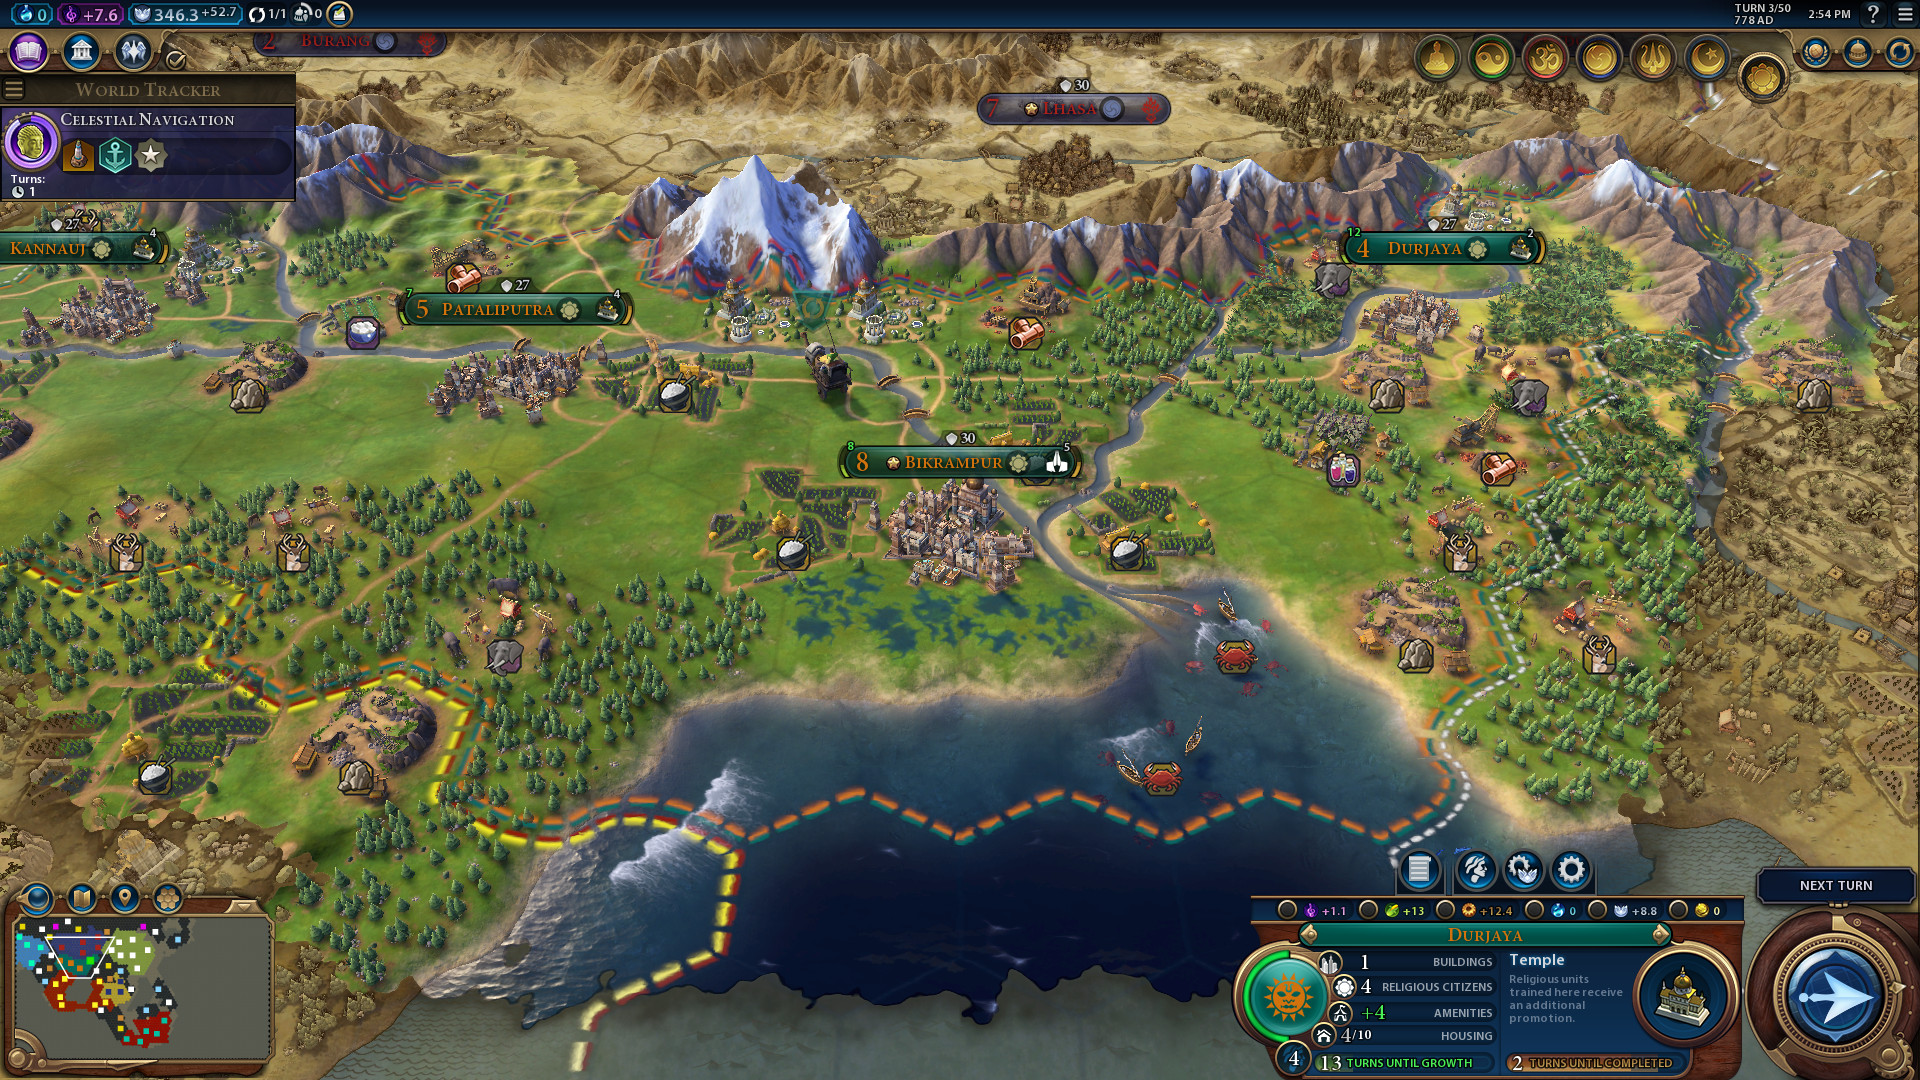 The Linux version of Civilization VI has been updated with cross